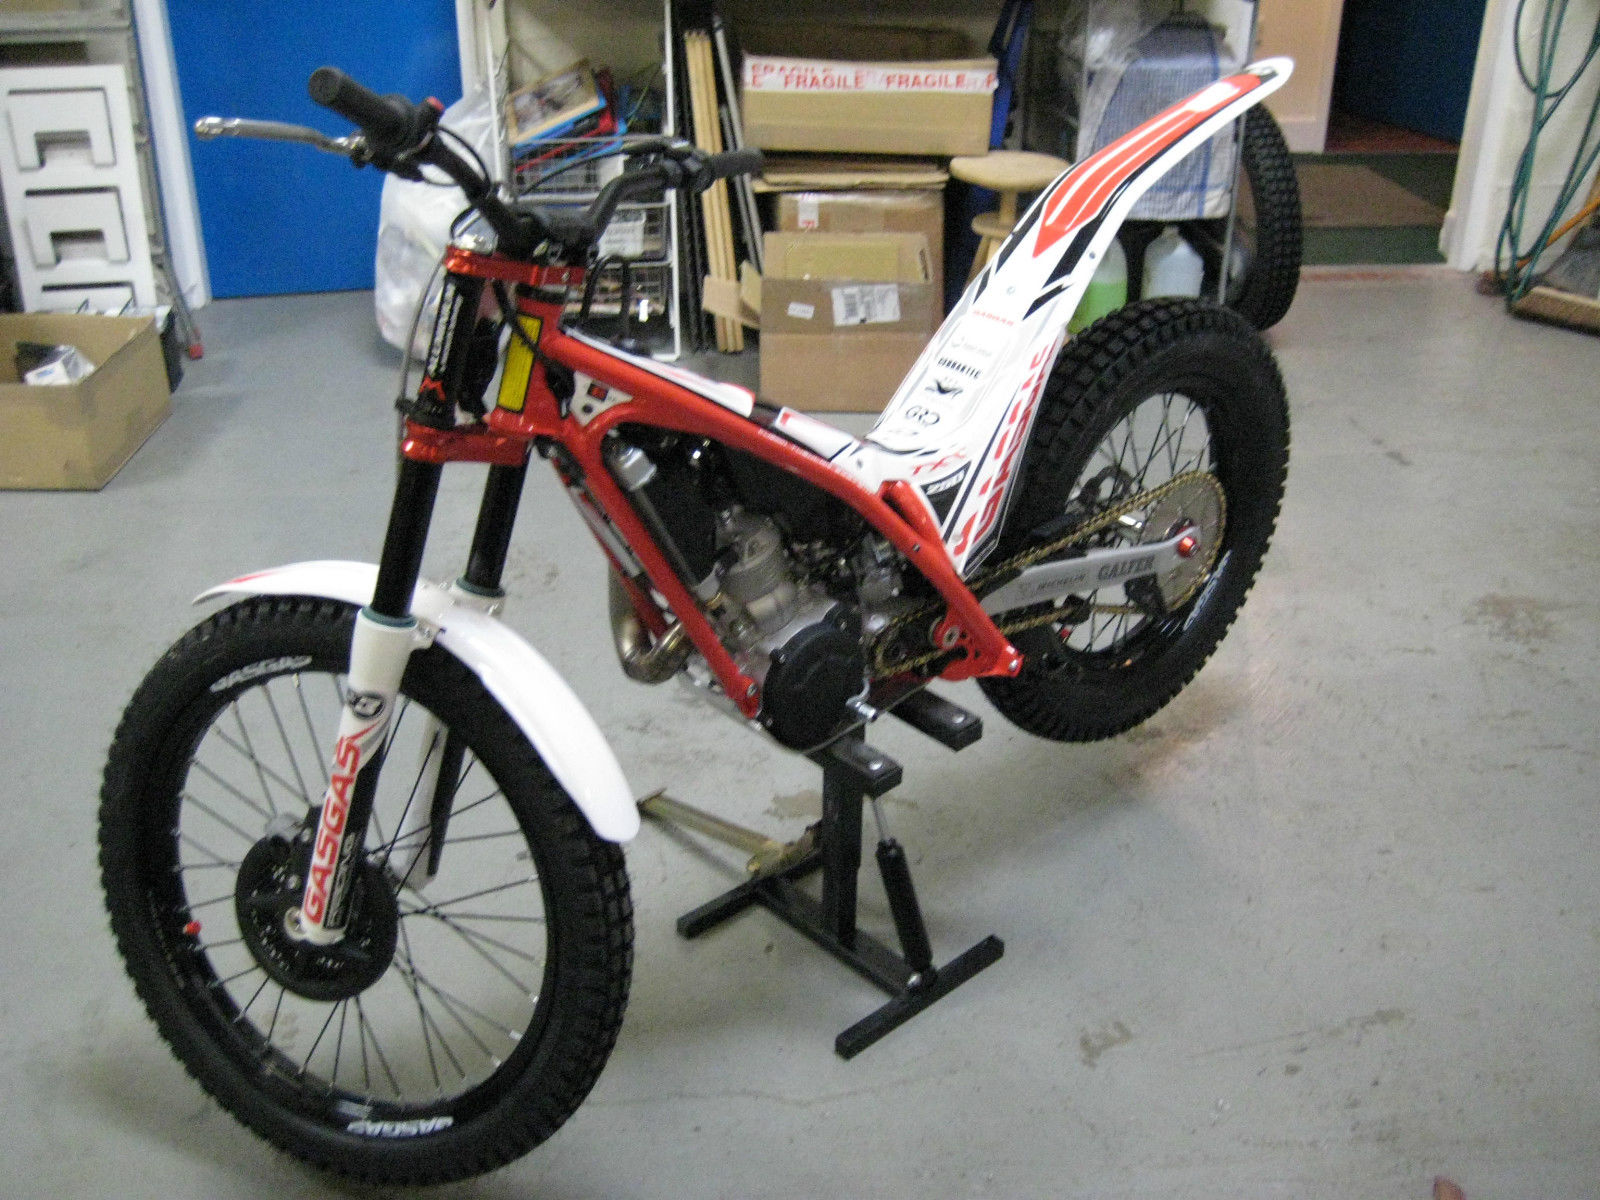 new 2015 gas gas txt pro trials bike 2 stroke great prices. Black Bedroom Furniture Sets. Home Design Ideas